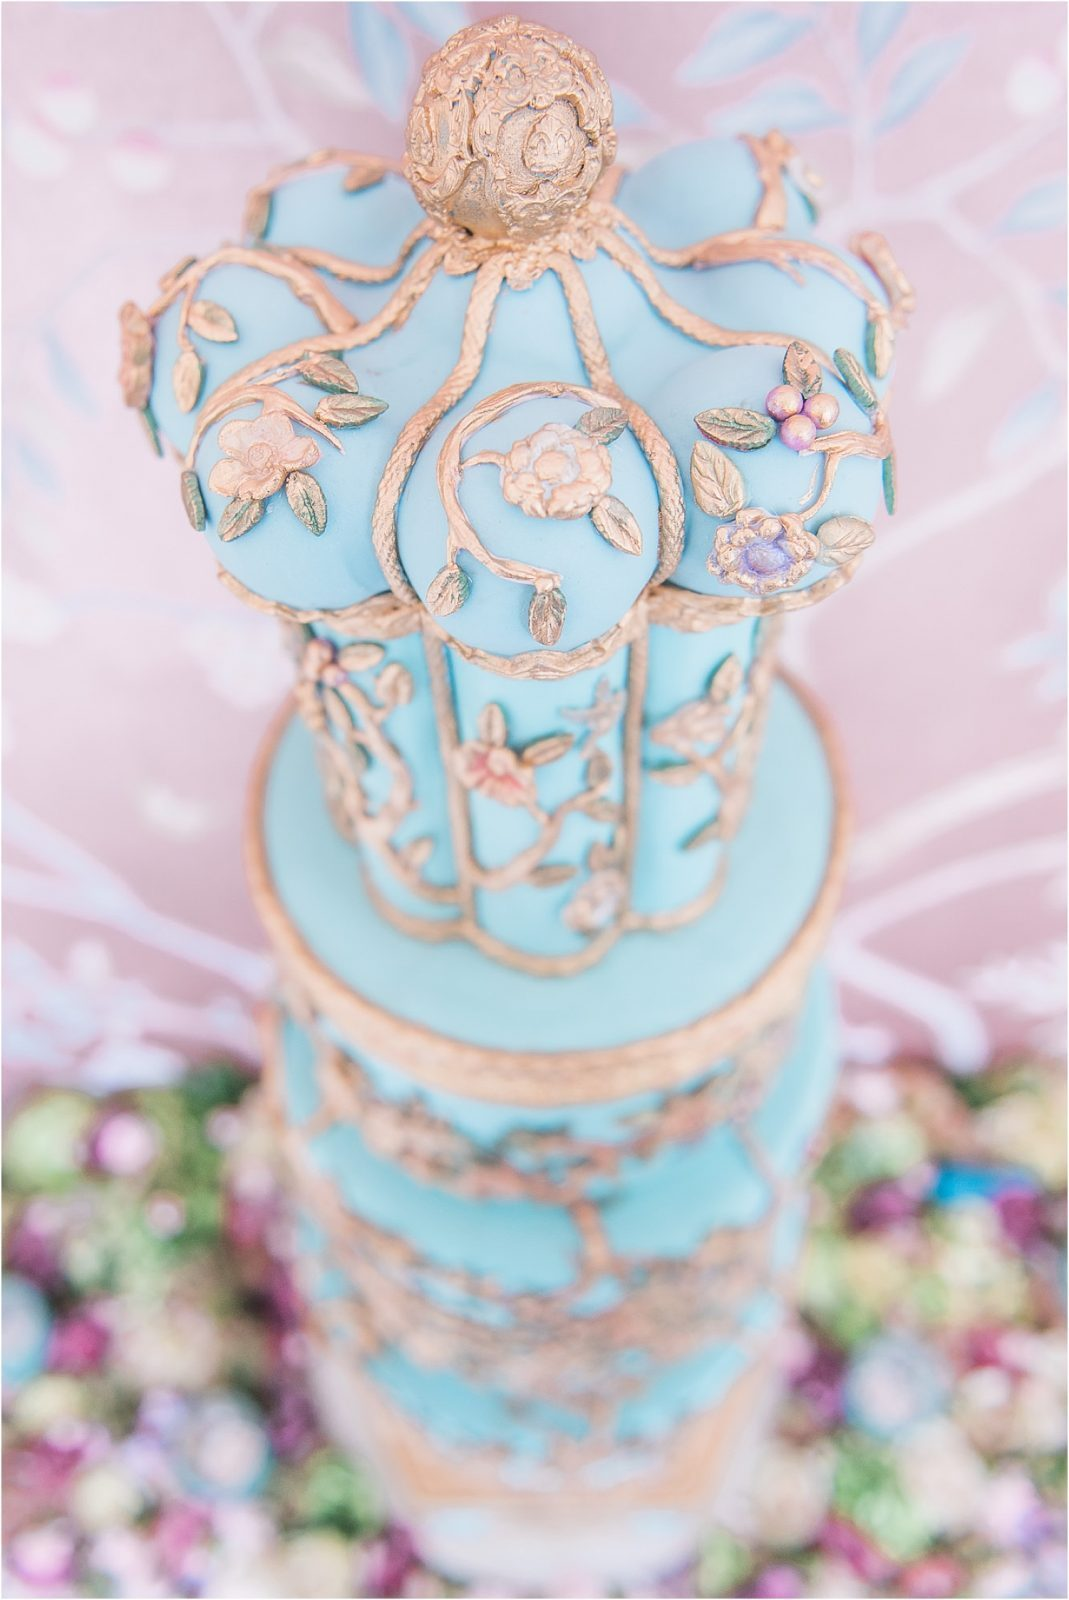 0012 Vanilla Bean Cakery_Ornate Wedding Cake_Luxury Wedding Cake Toronto_PhotosbyEmmaH_WEB.jpg